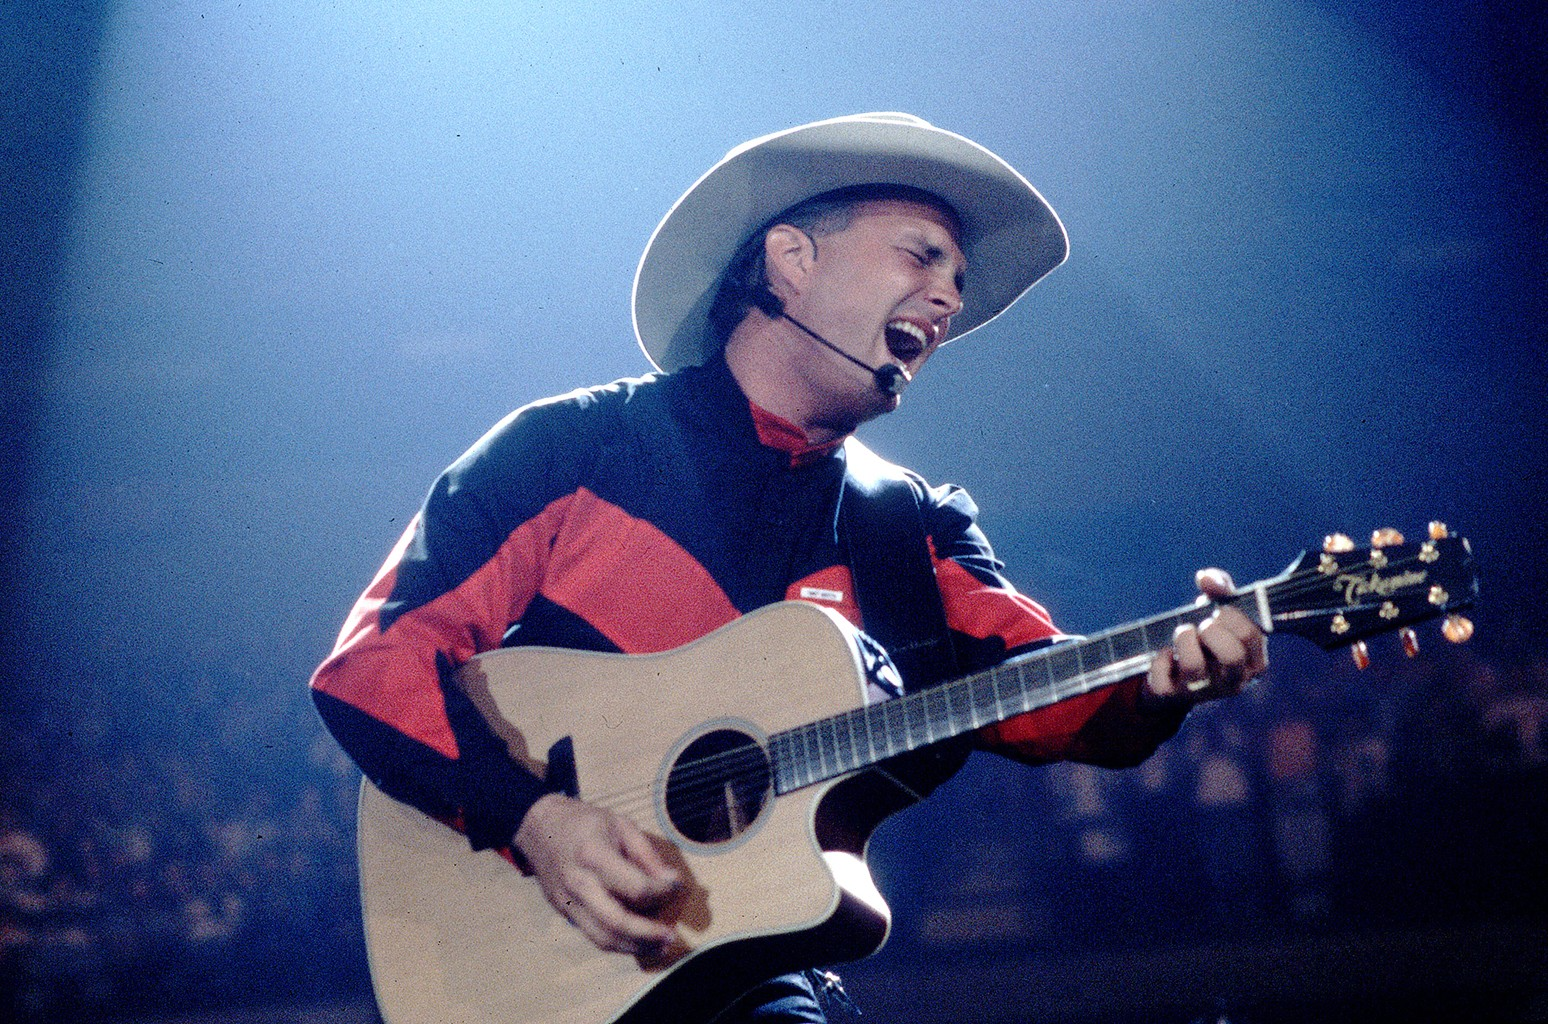 Garth Brooks performs in Chicago on Oct. 1, 1993.